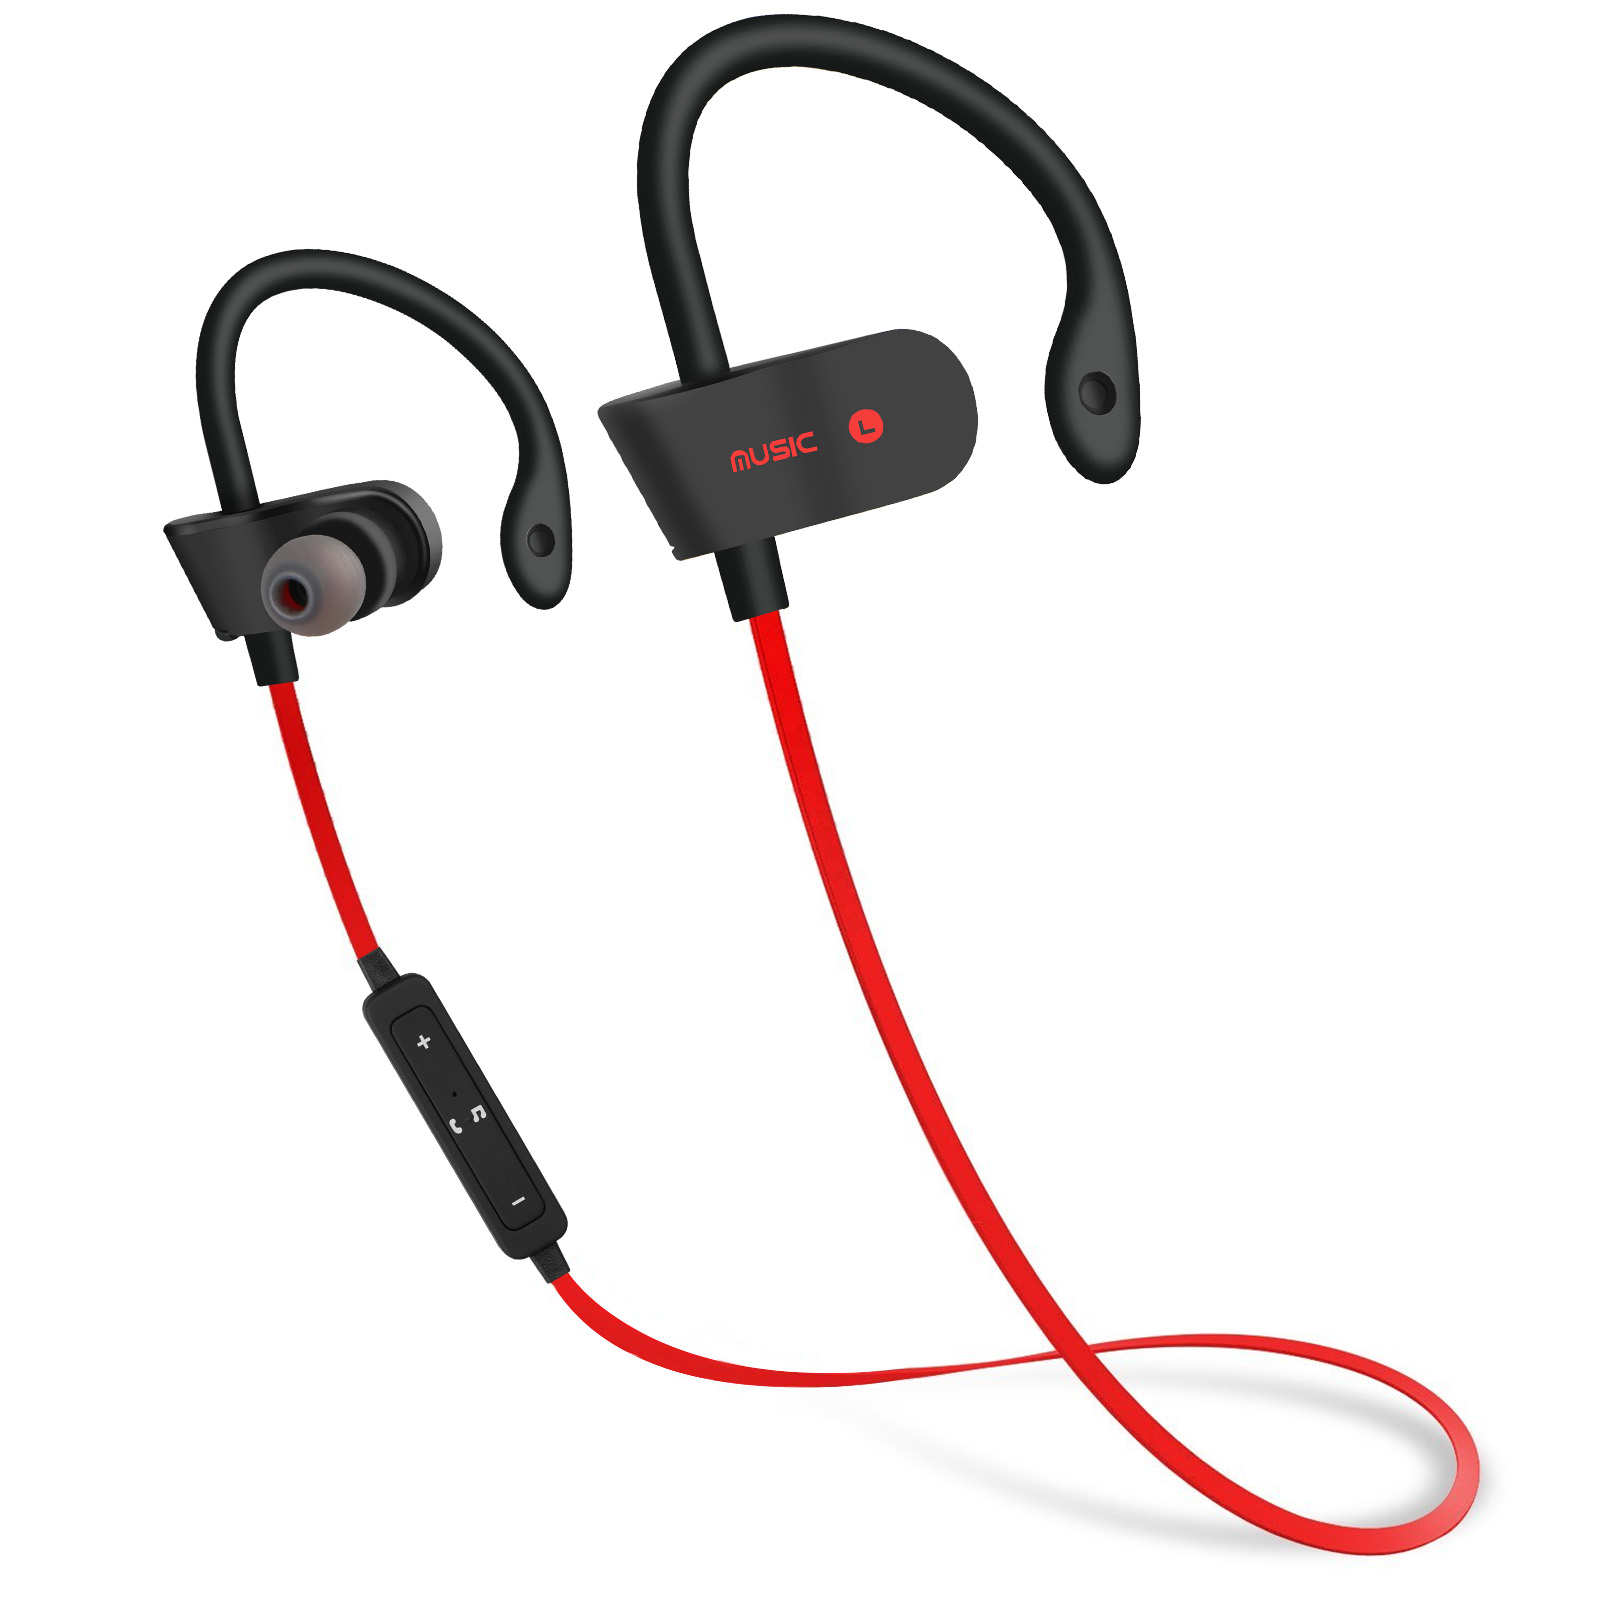 sweatproof headphones wireless bluetooth sport earphones. Black Bedroom Furniture Sets. Home Design Ideas